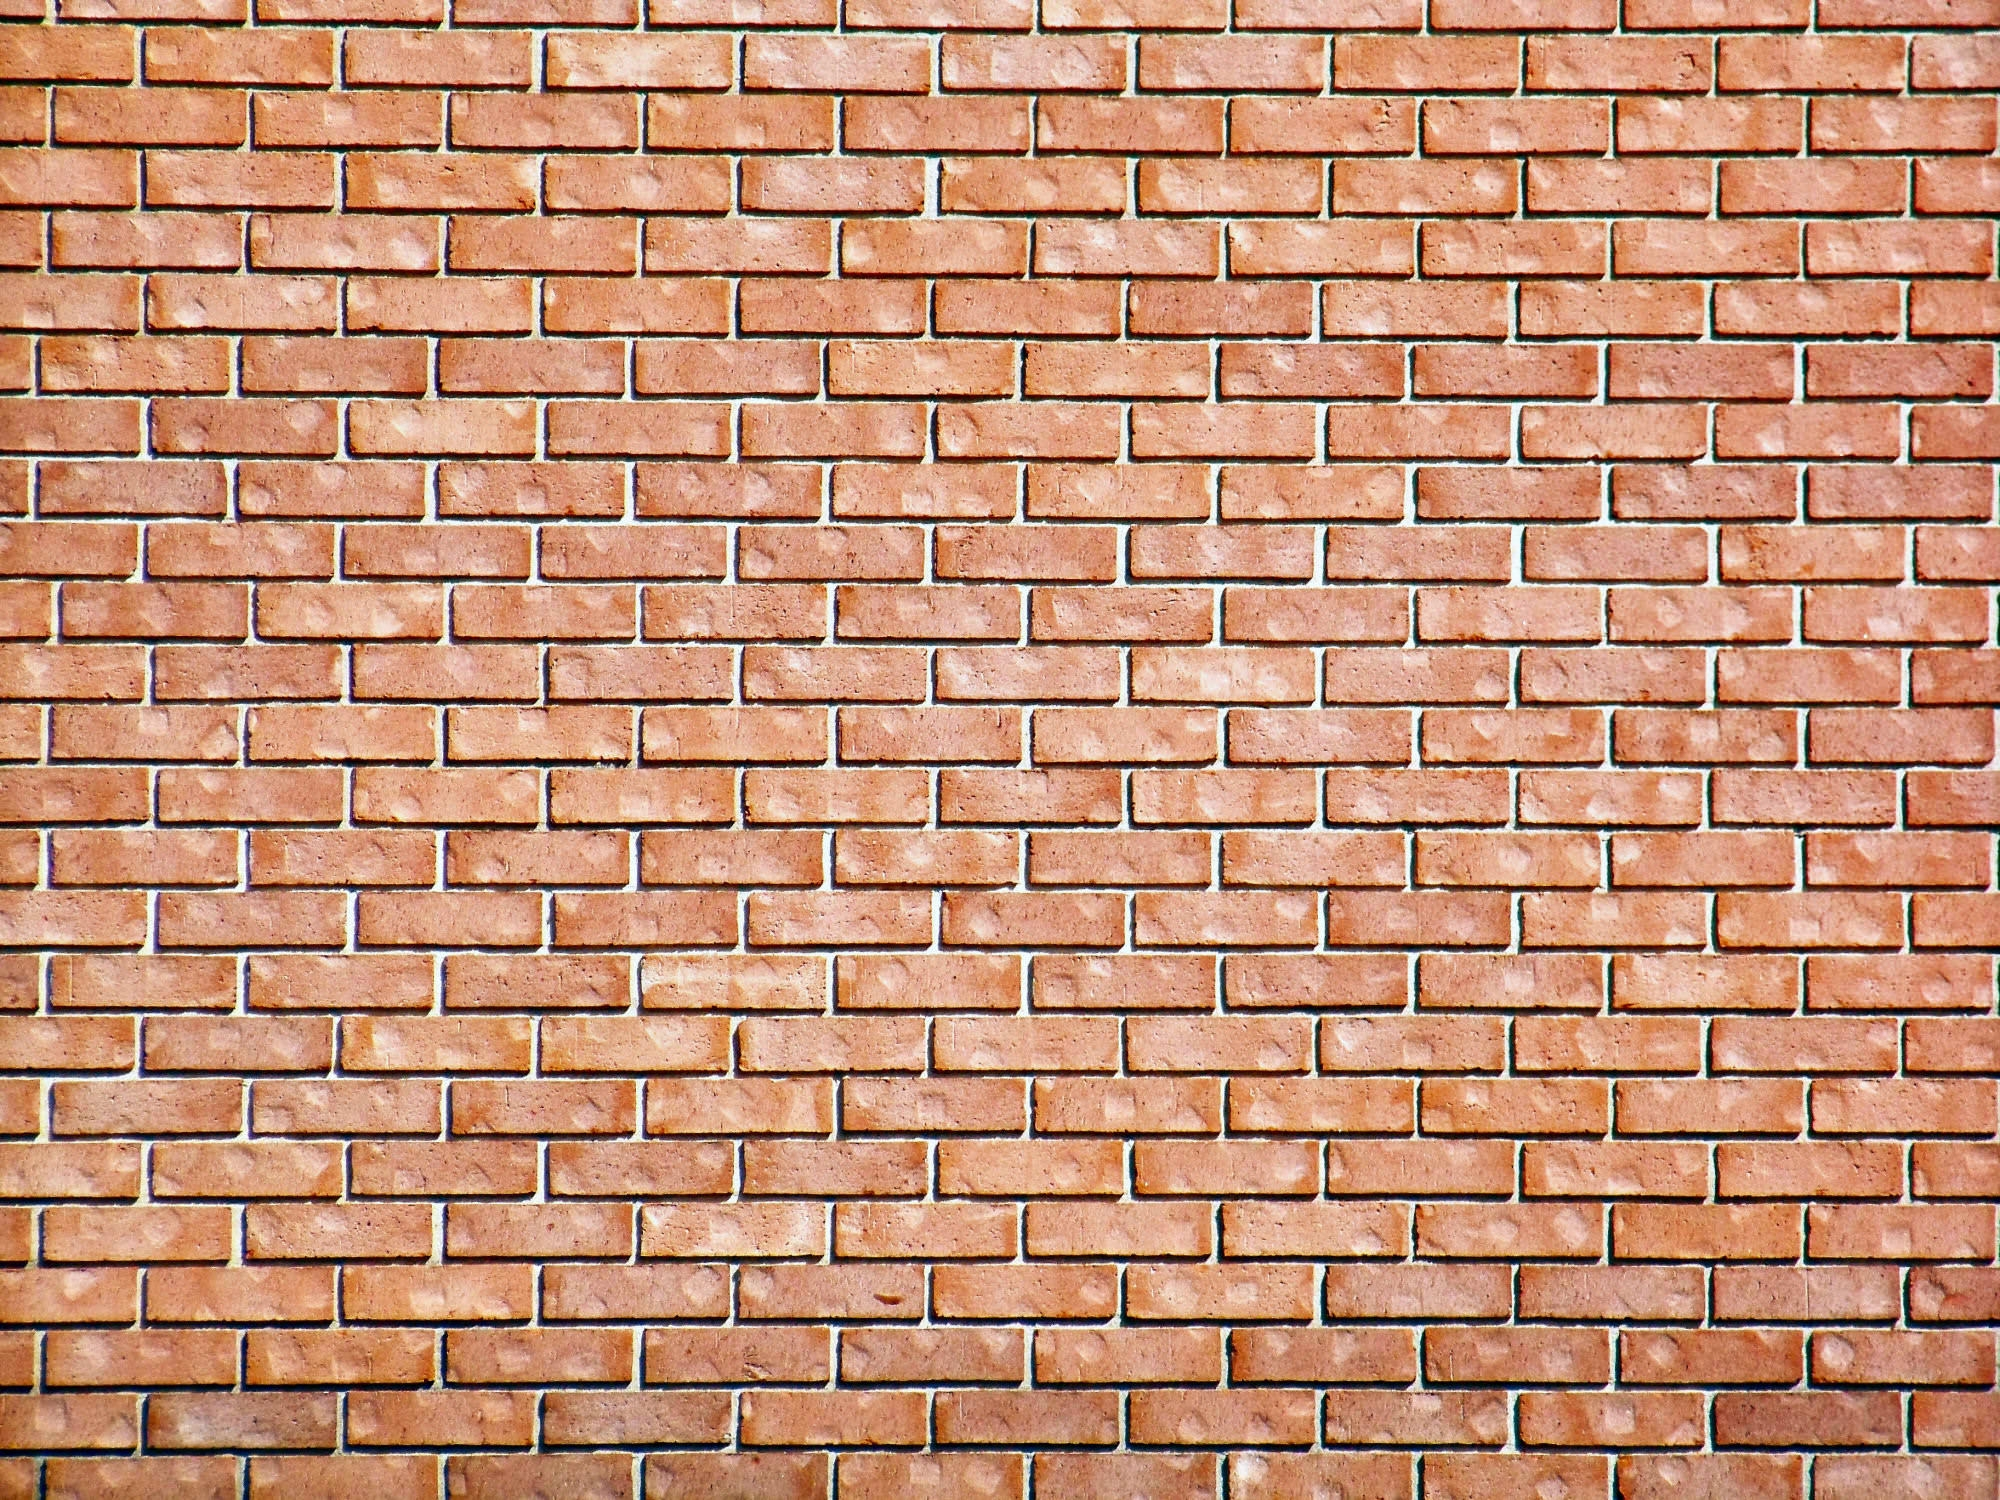 35 brick wall backgrounds images pictures freecreatives for Wallpapering a wall